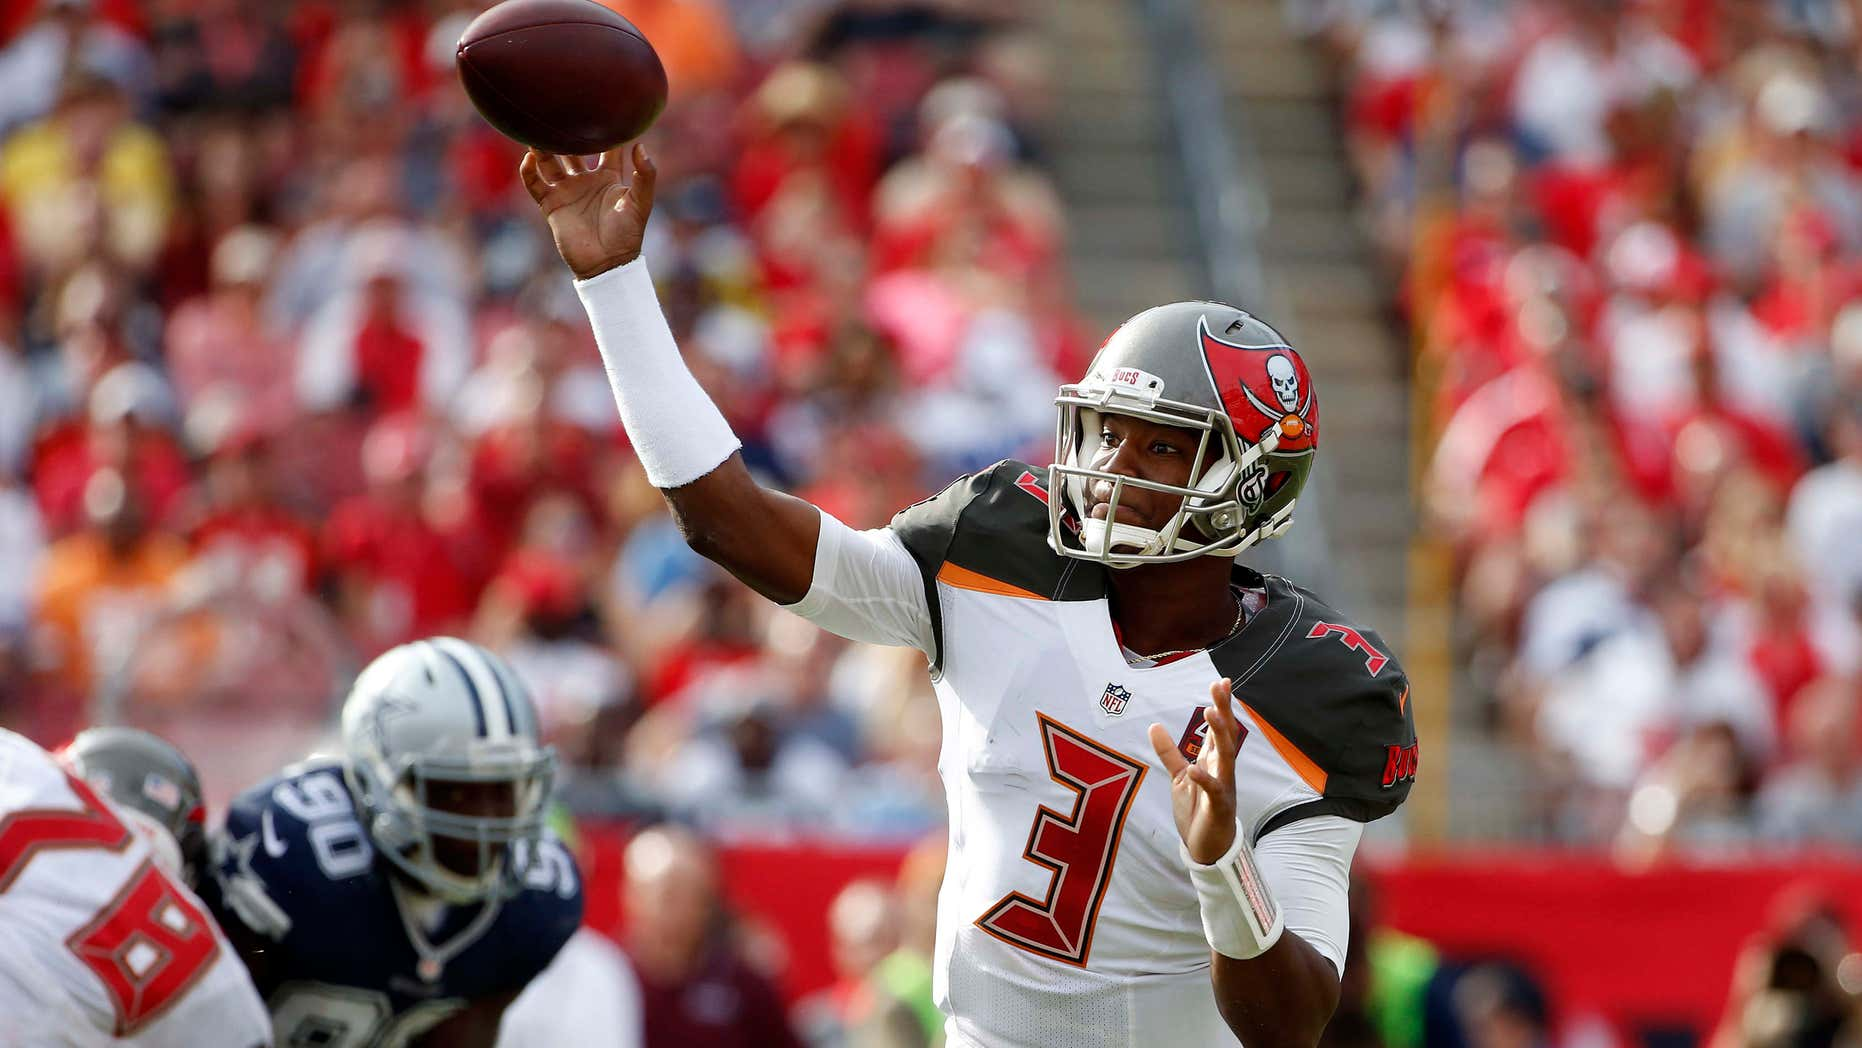 FILE - In this Nov. 15, 2015, file photo, Tampa Bay Buccaneers quarterback Jameis Winston (3) throws a pass against the Dallas Cowboys during the second quarter of an NFL football game, in Tampa, Fla.